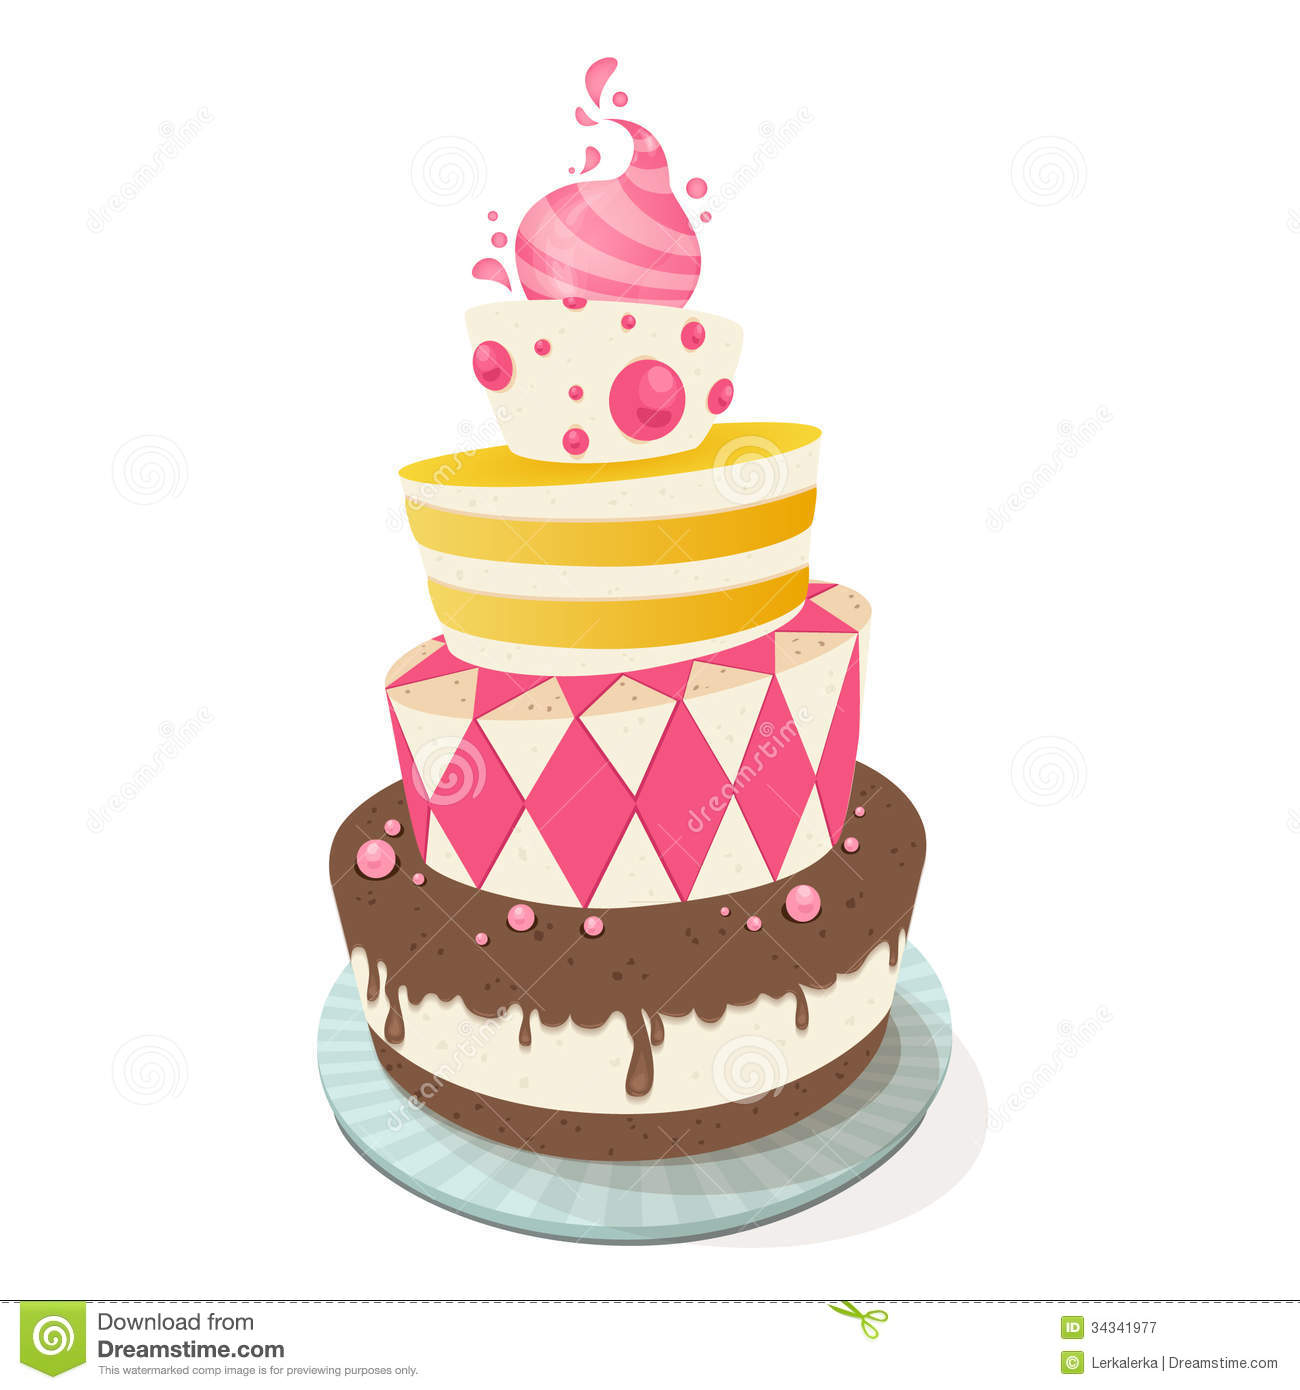 Cake Illustration Pictures to Pin on Pinterest - PinsDaddy